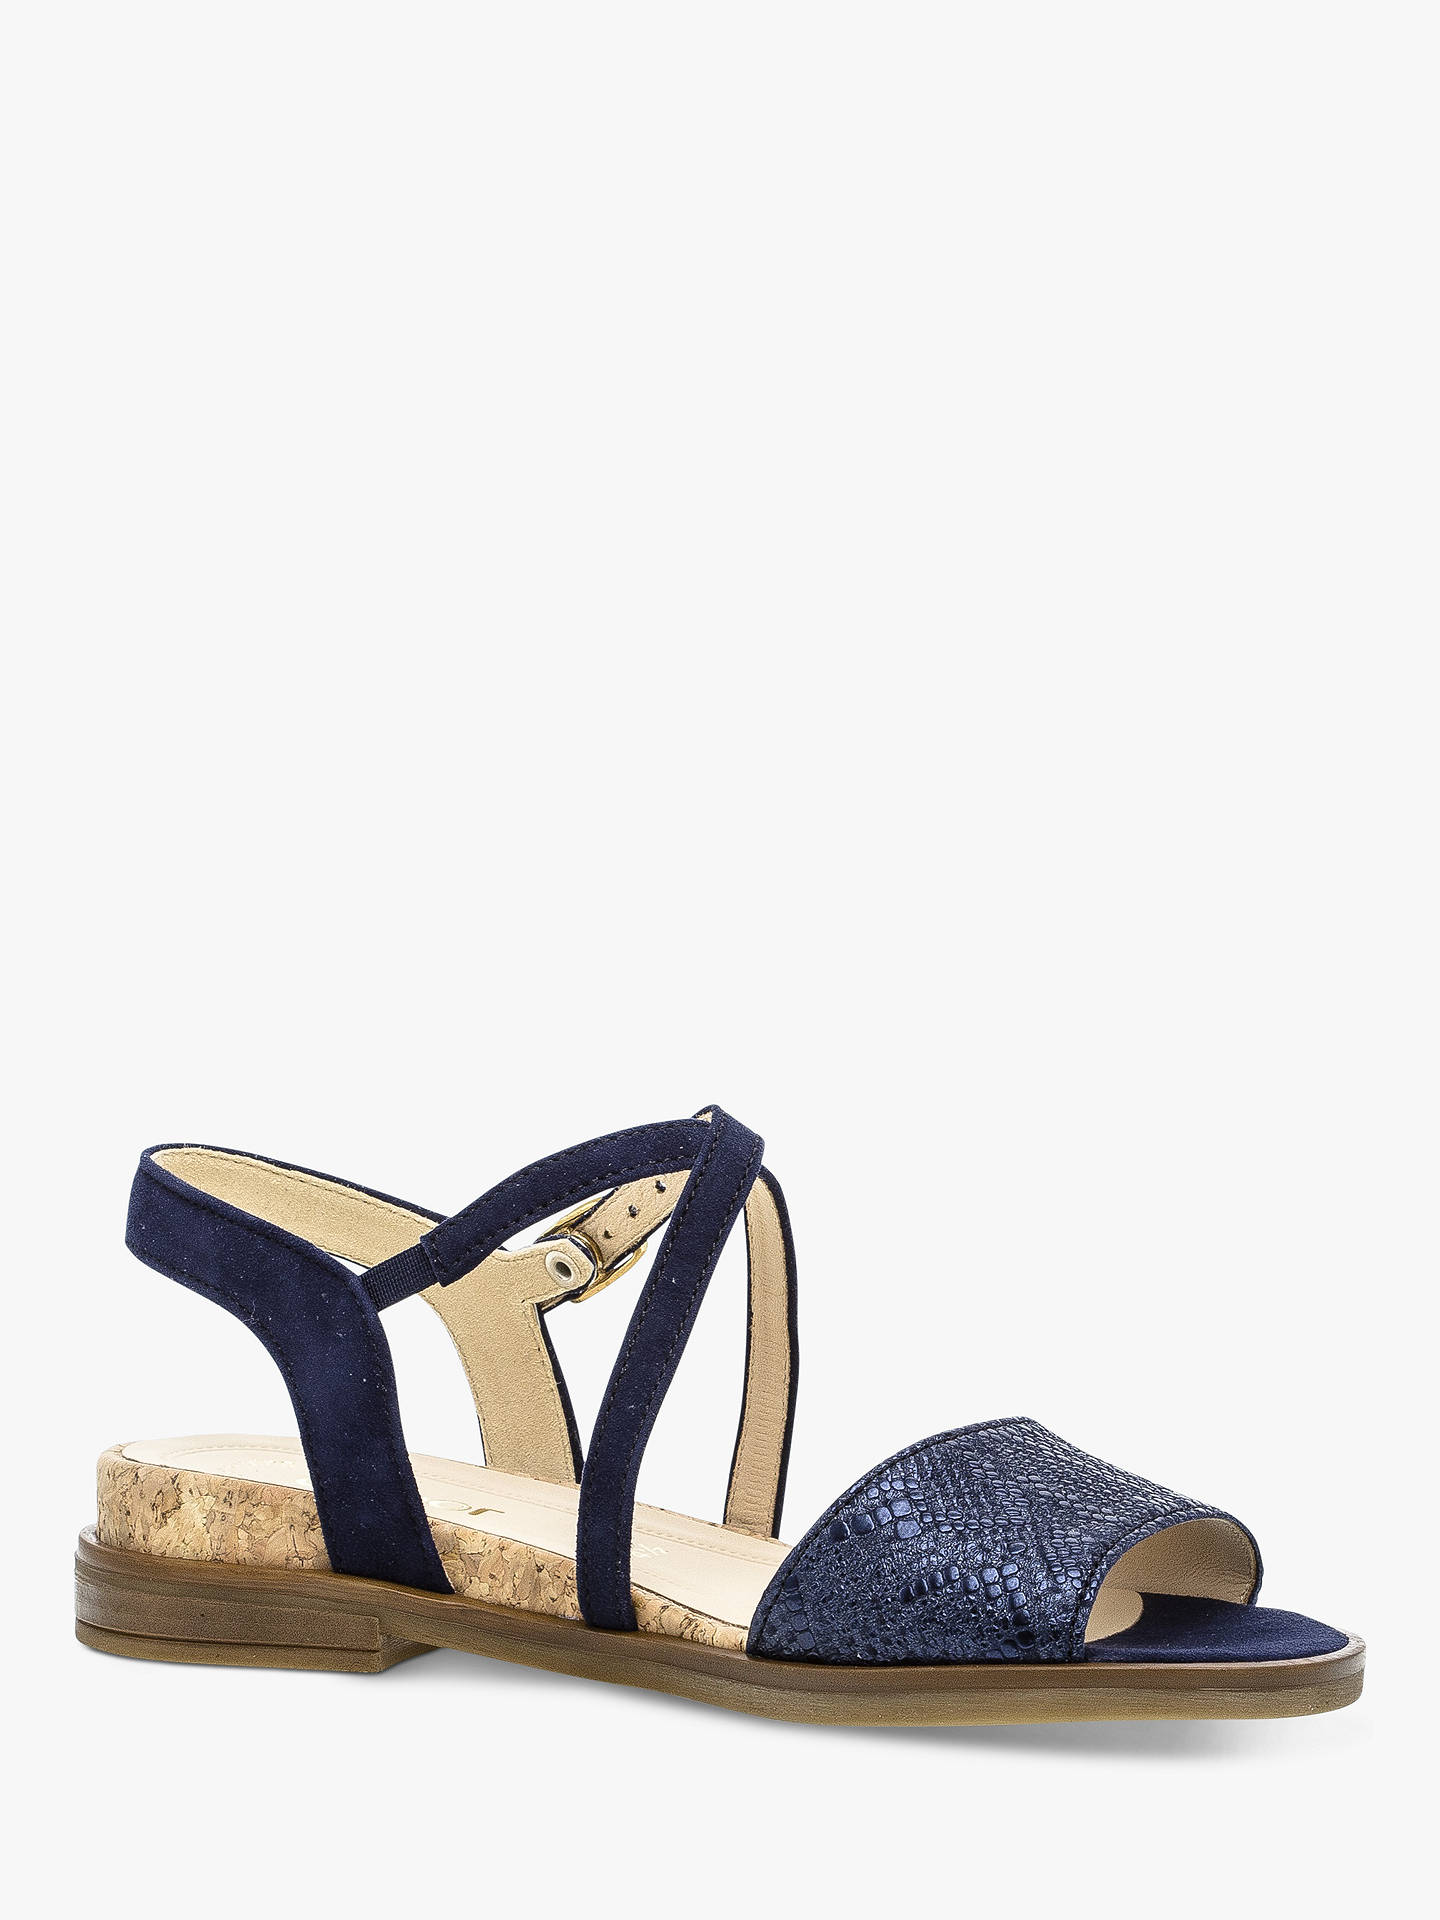 7f5e6aedd51e3 Buy Gabor Impact Two Part Cross Strap Sandals, Navy Suede, 3 Online at  johnlewis ...